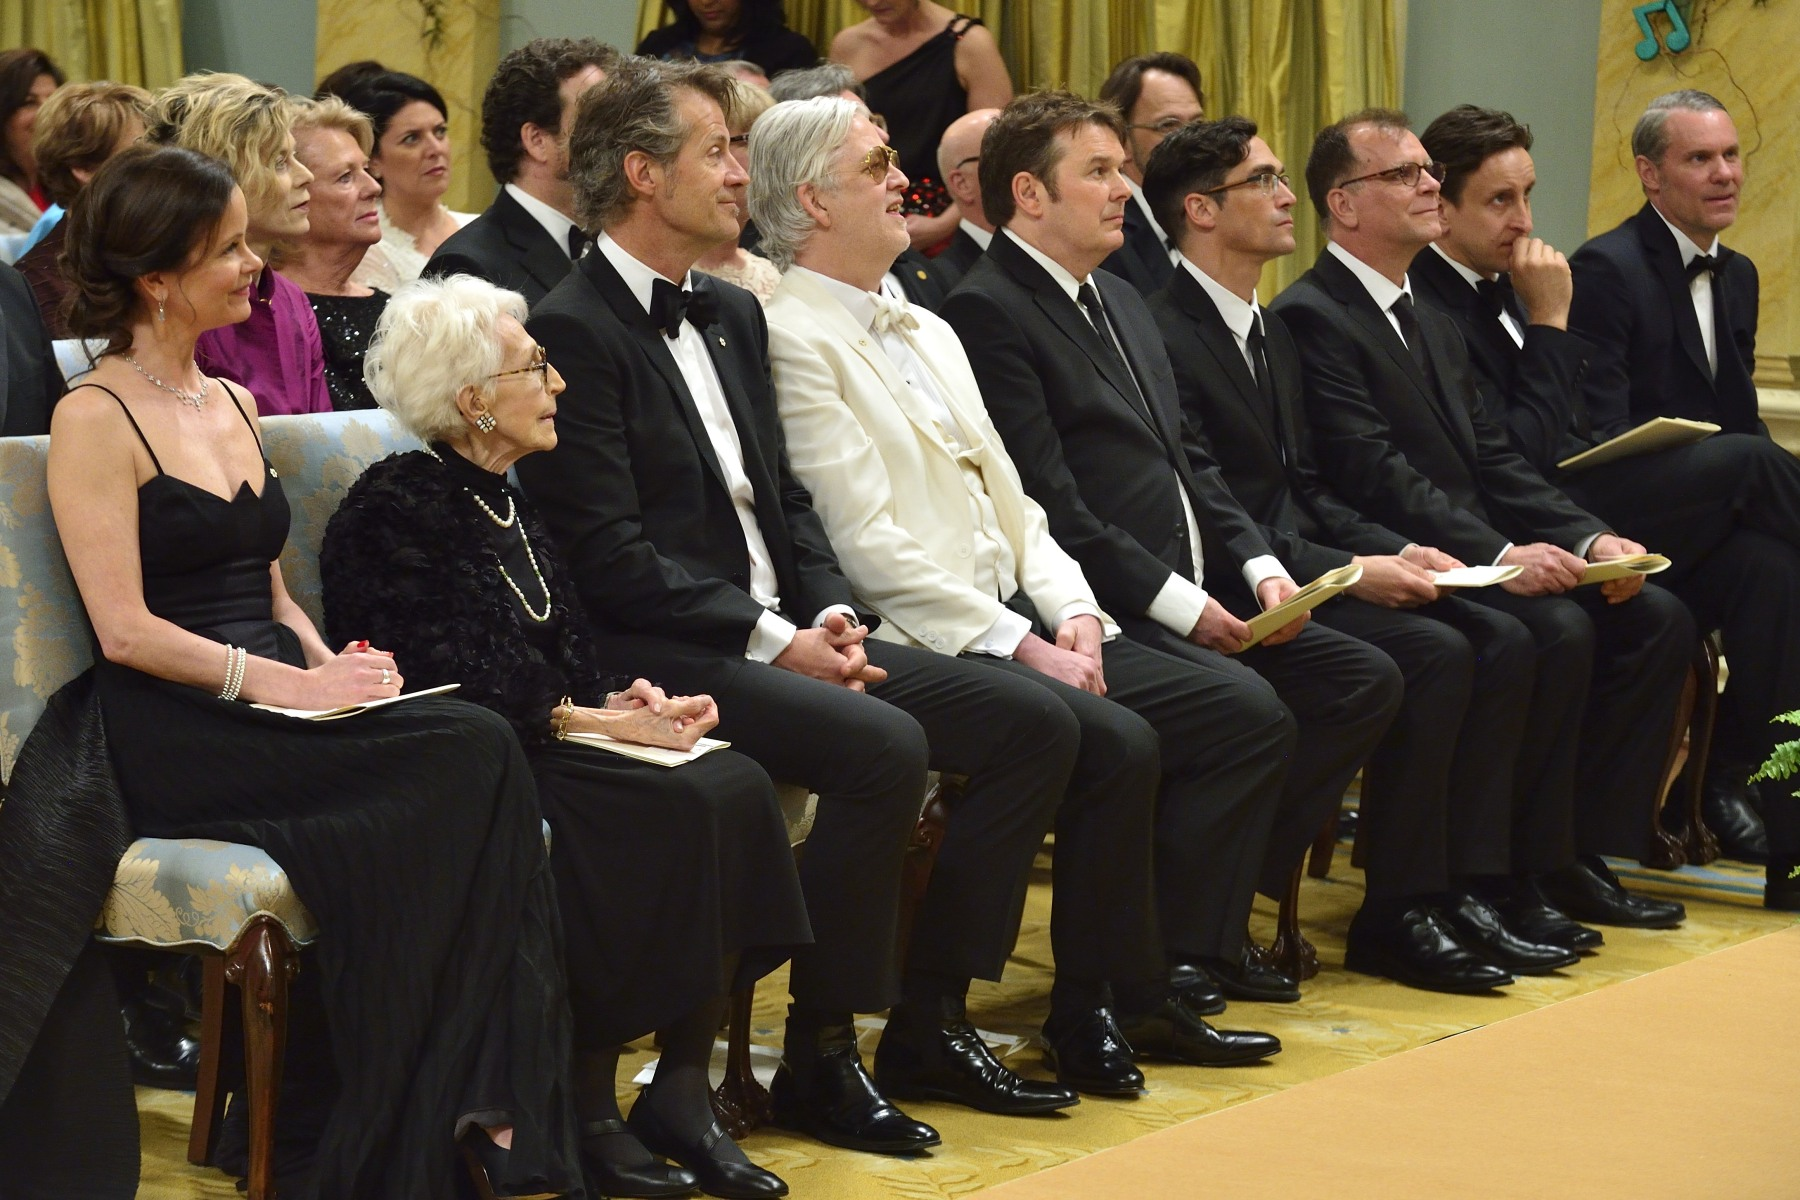 Their Excellencies presented the 2014 Governor General's Performing Arts Awards (GGPAA) during a ceremony at Rideau Hall.